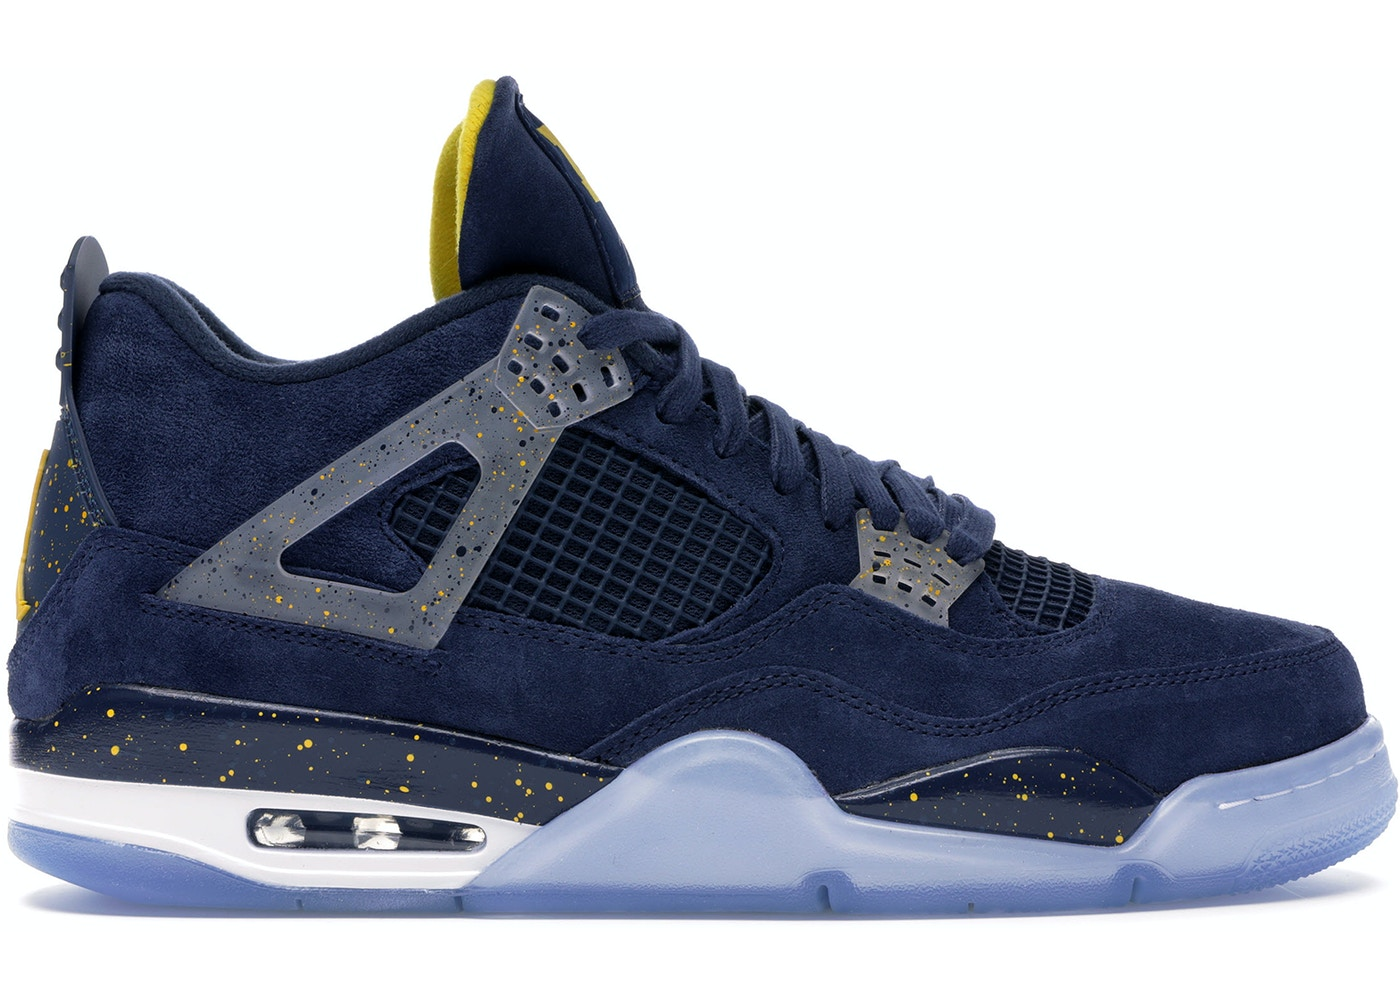 hot sale online 746c8 f825f Air Jordan Shoes - Average Sale Price